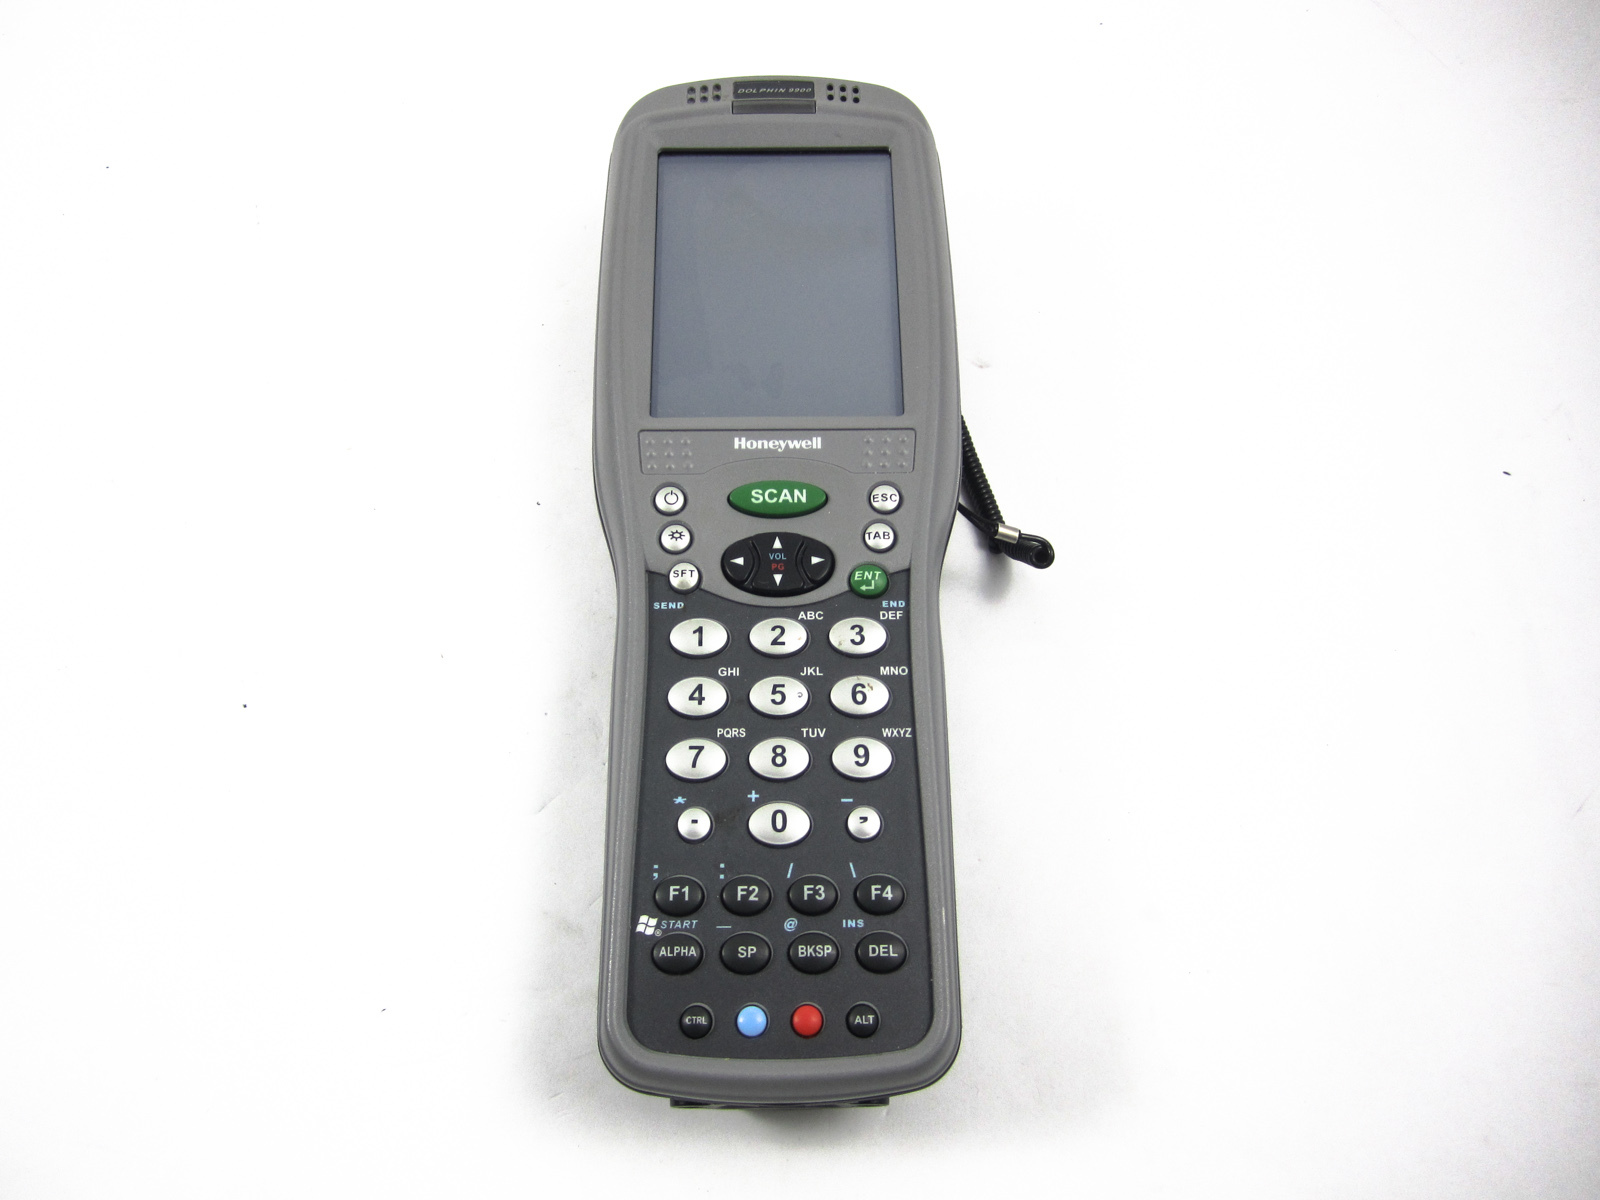 Honeywell Dolphin 9900 EMEA Wifi GSM Bluetooth Windows Mobile 6 35 key 5100SR GPS